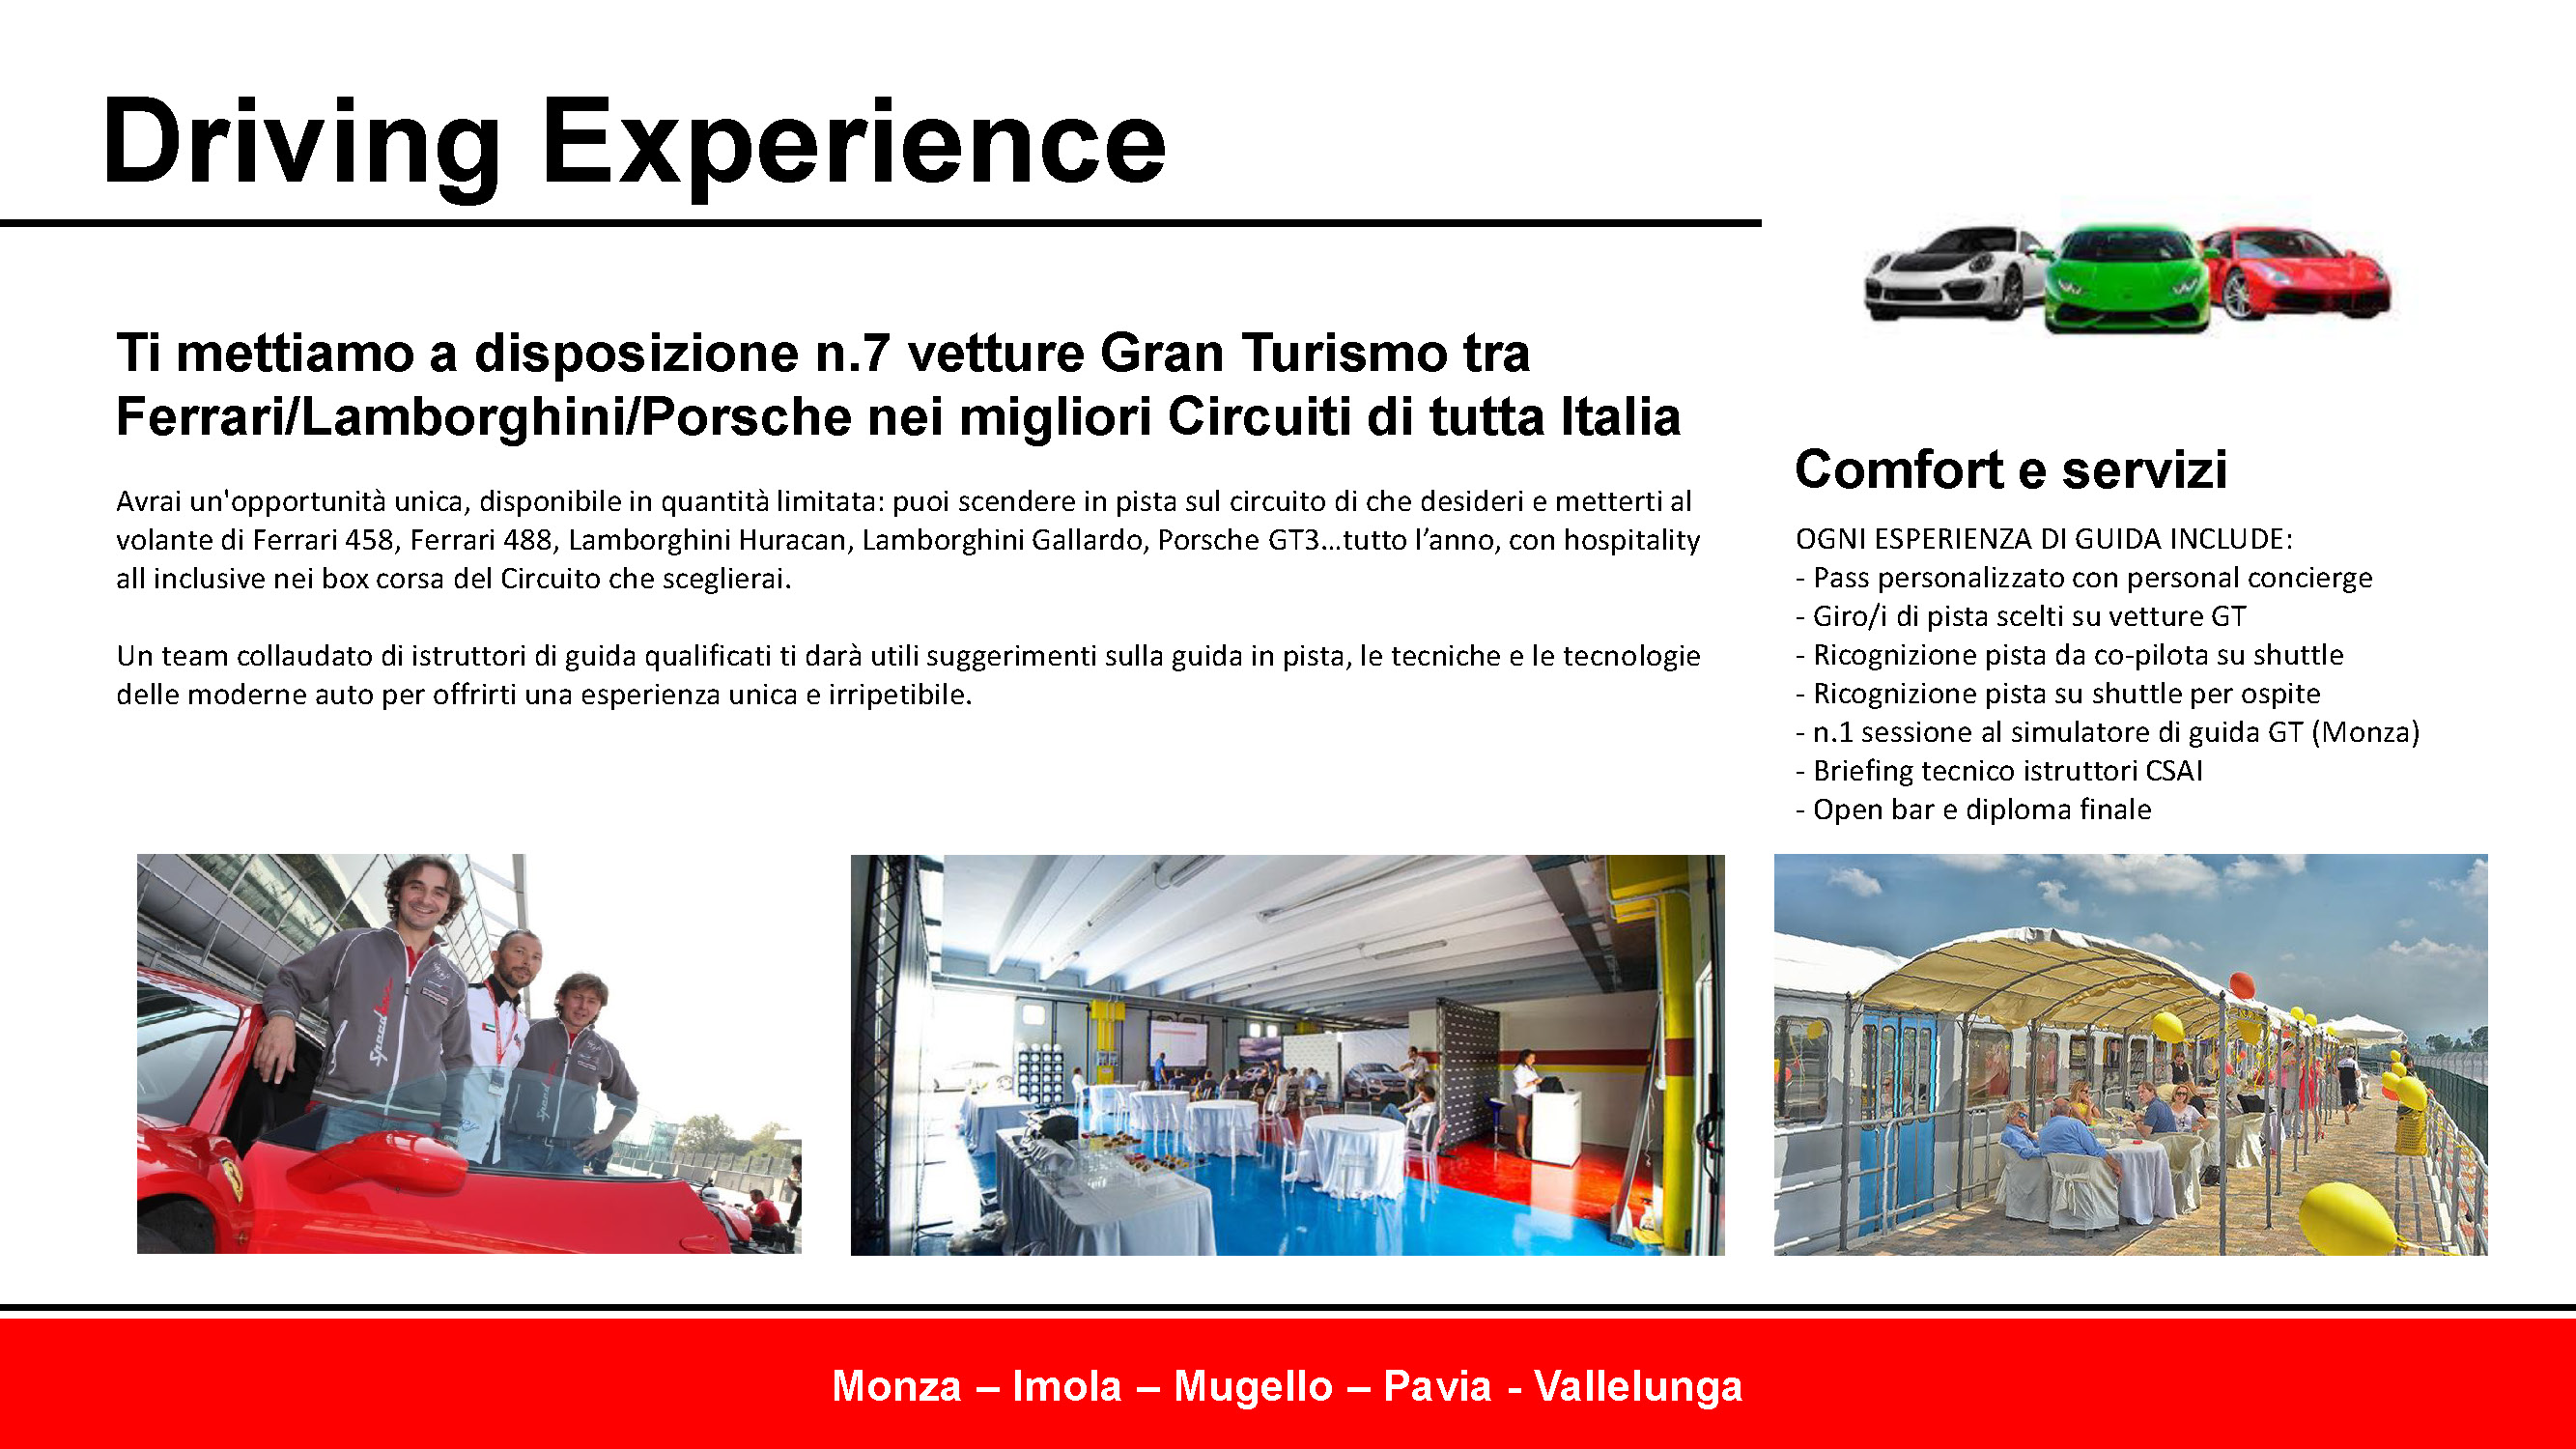 V2 - Driving Experience 2019_RB Corporate_Page_1